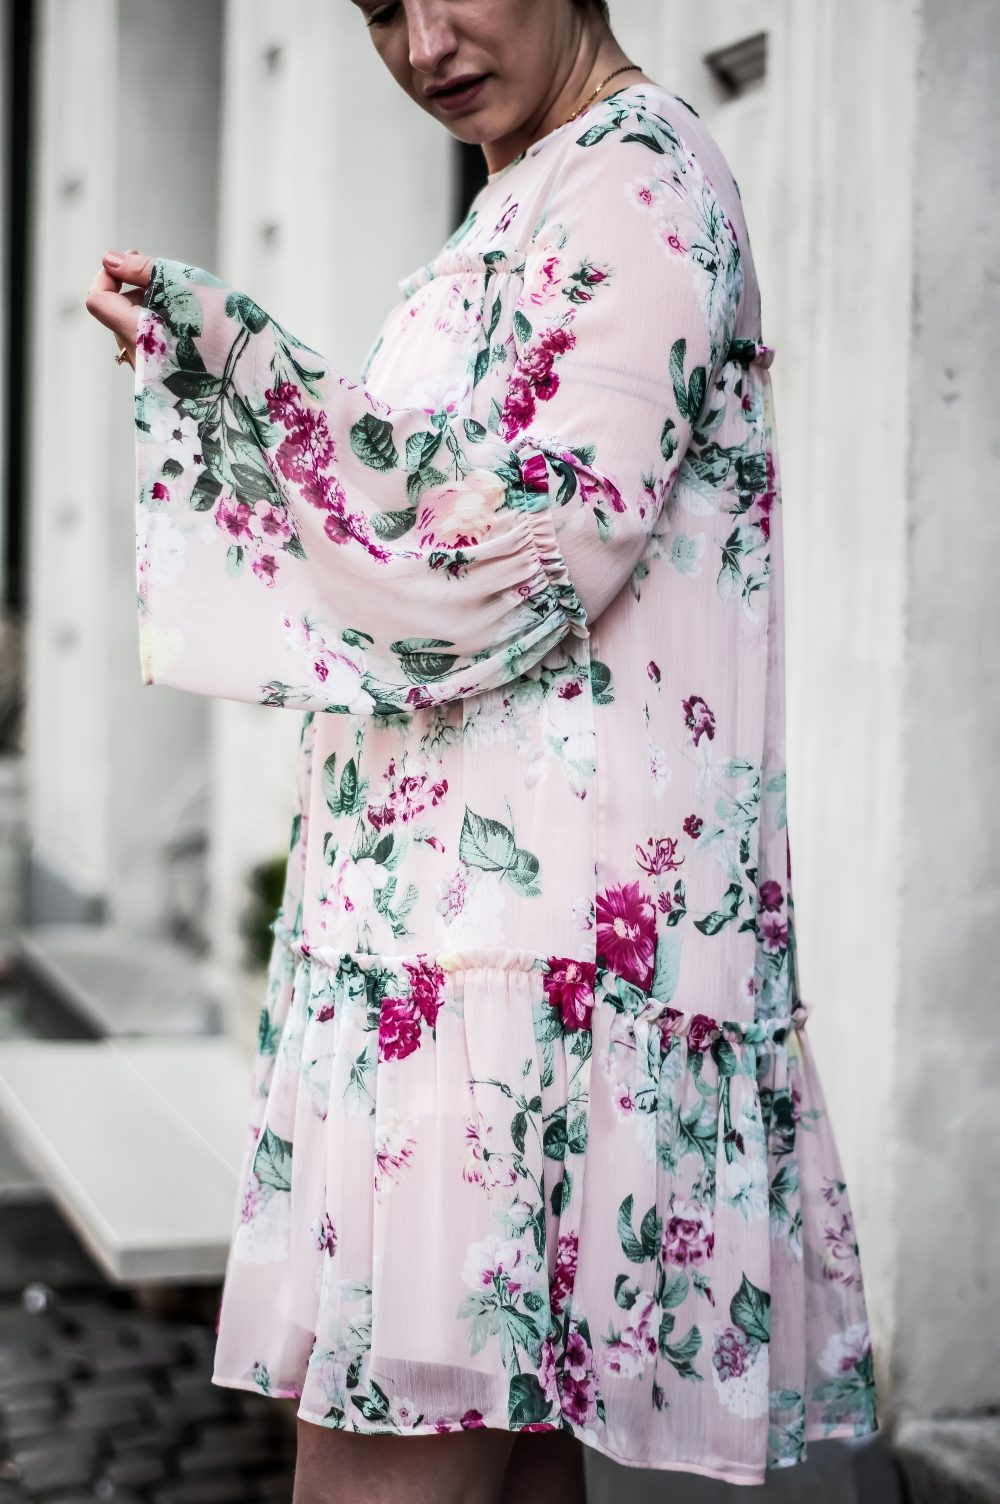 spring summer 2018 floral dress, pink dress, casual dress 1